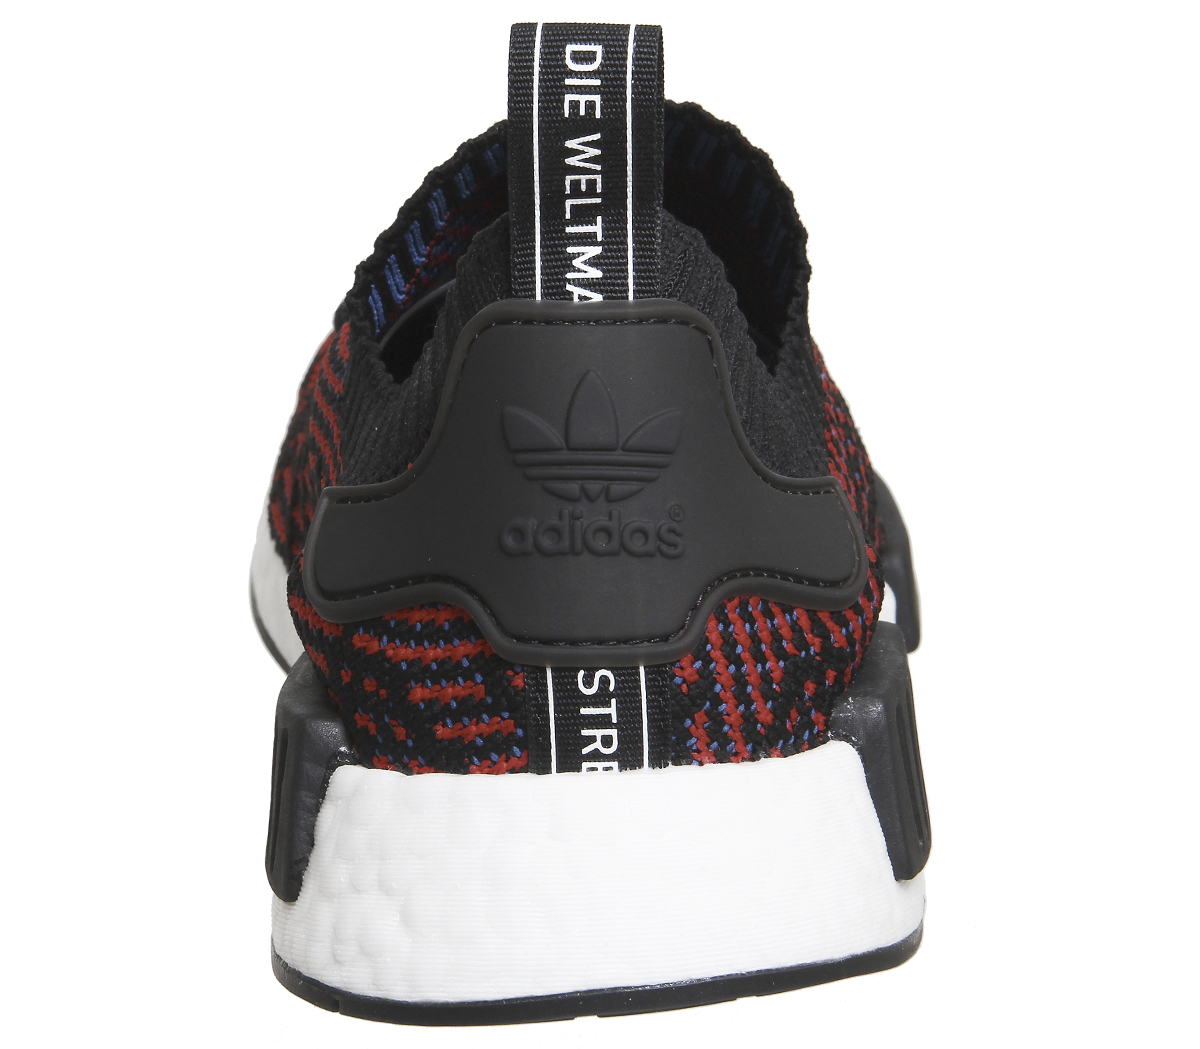 ef4a211407c Sentinel Adidas Nmd R1 Prime Knit Core Black Red Trainers Shoes. Sentinel  Thumbnail 4